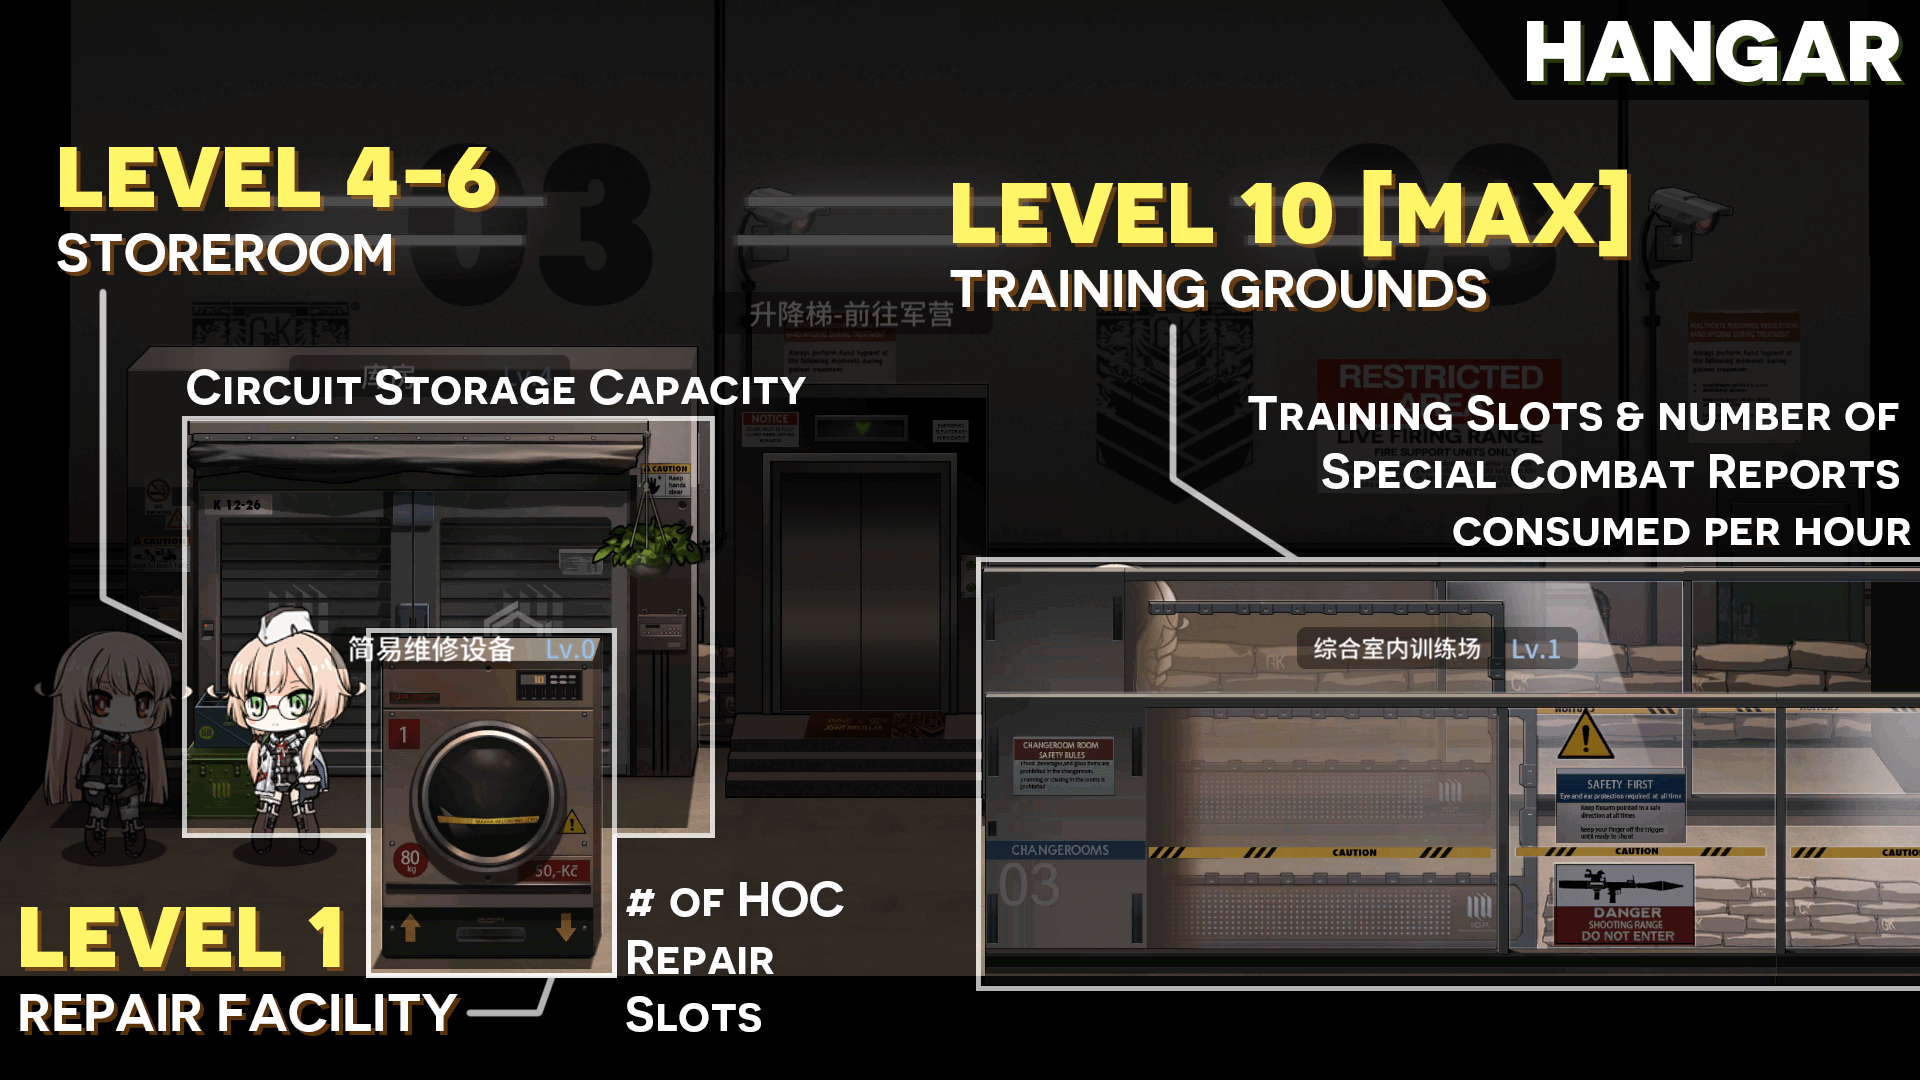 TL;DR Infographic on upgrading the Garage facilities